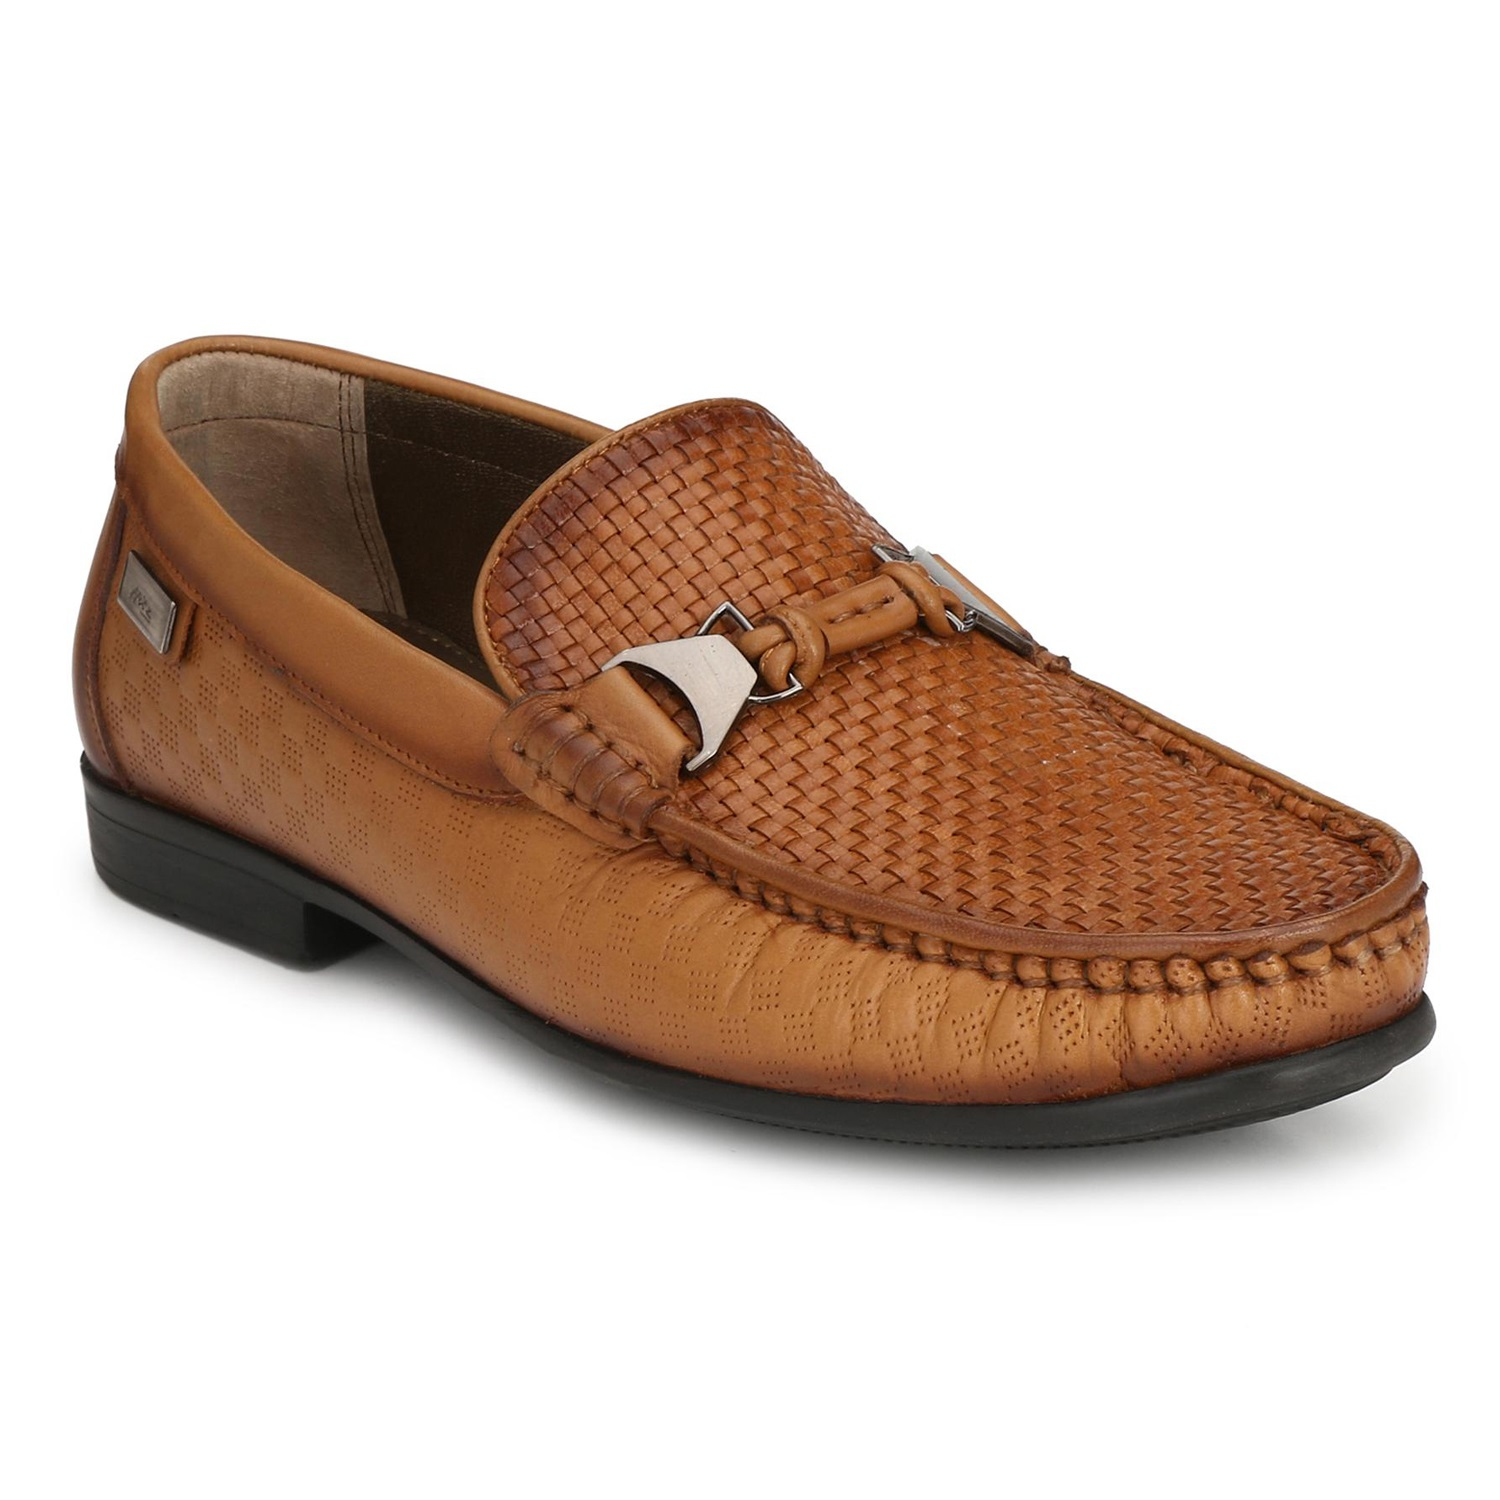 Hitz | Hitz Brown Genuine Leather Casual Loafers with Slip-On Fastening